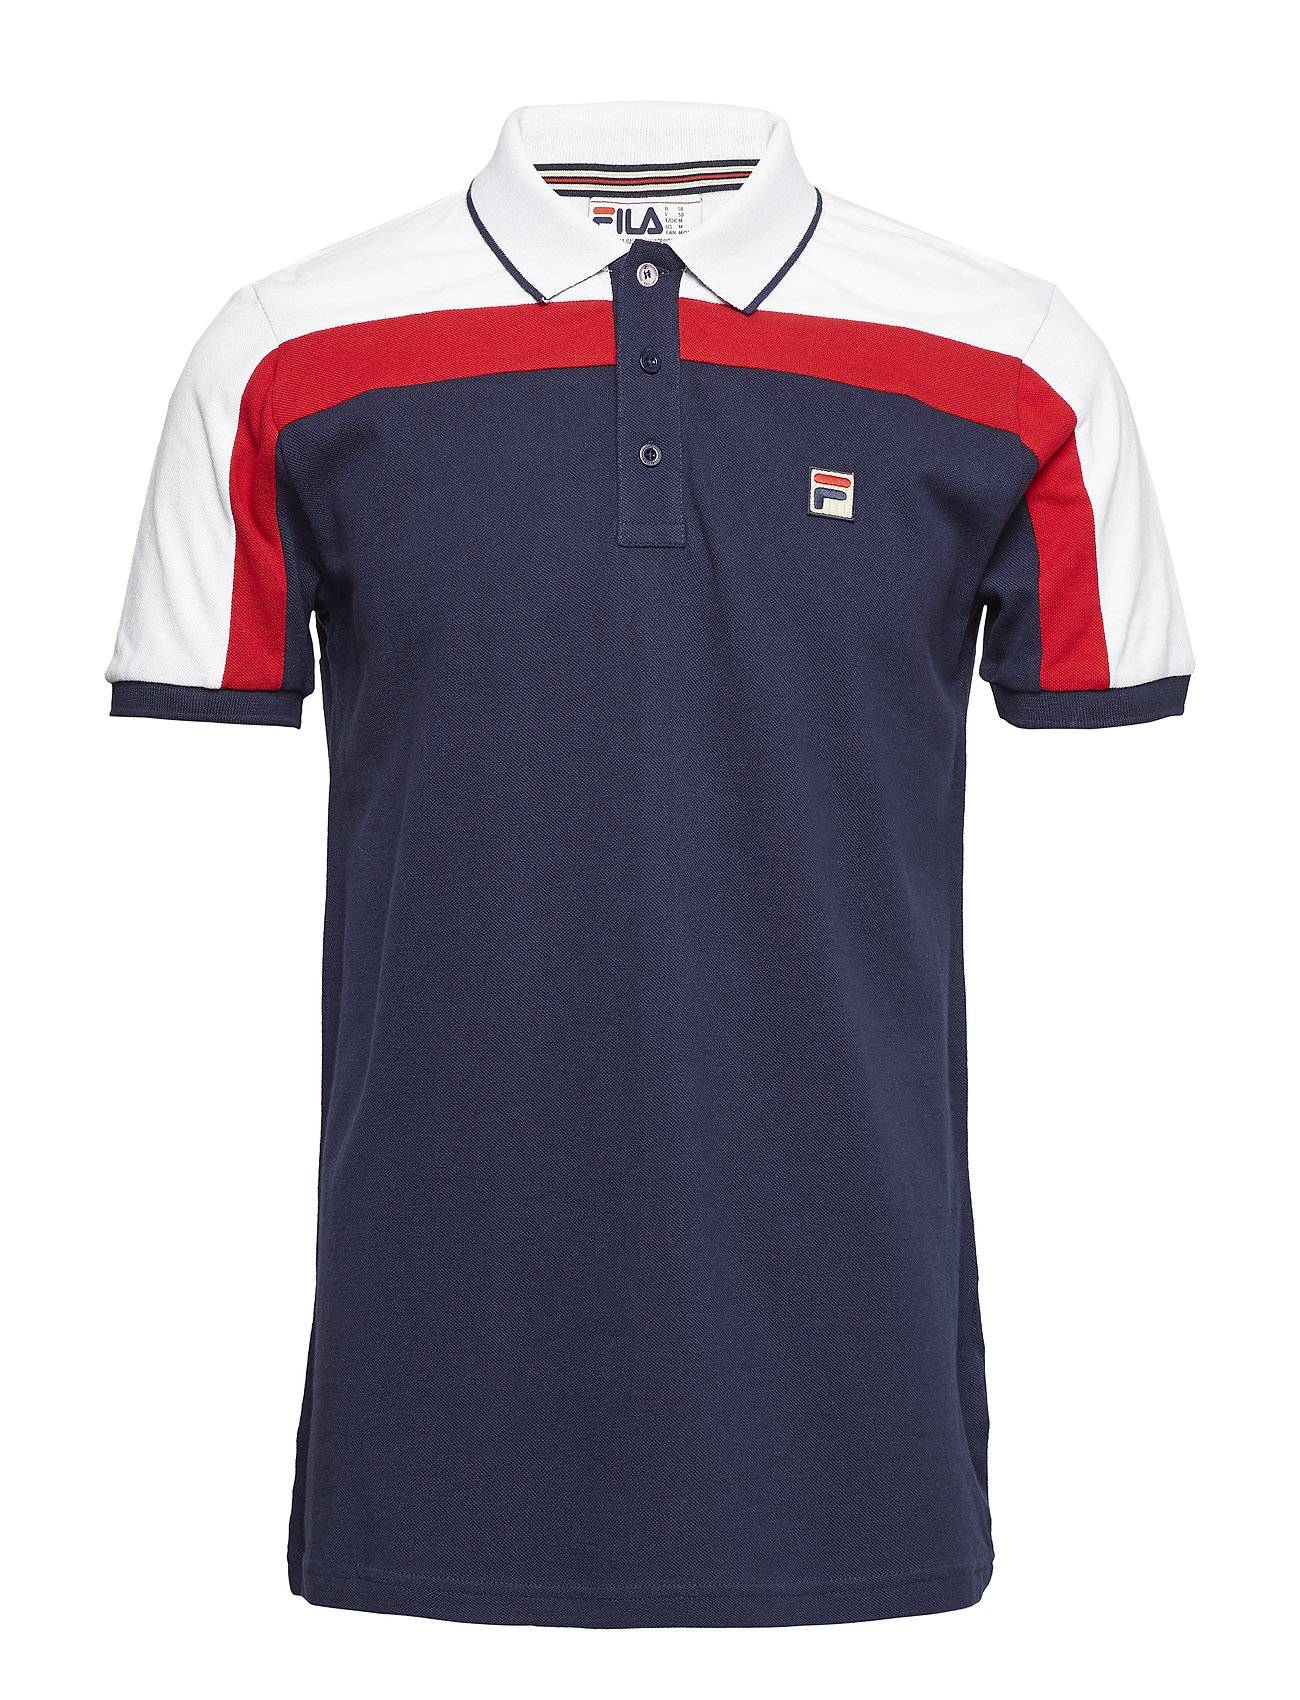 FILA Spencer Cut And Sew Panel Slim Fit Polo With